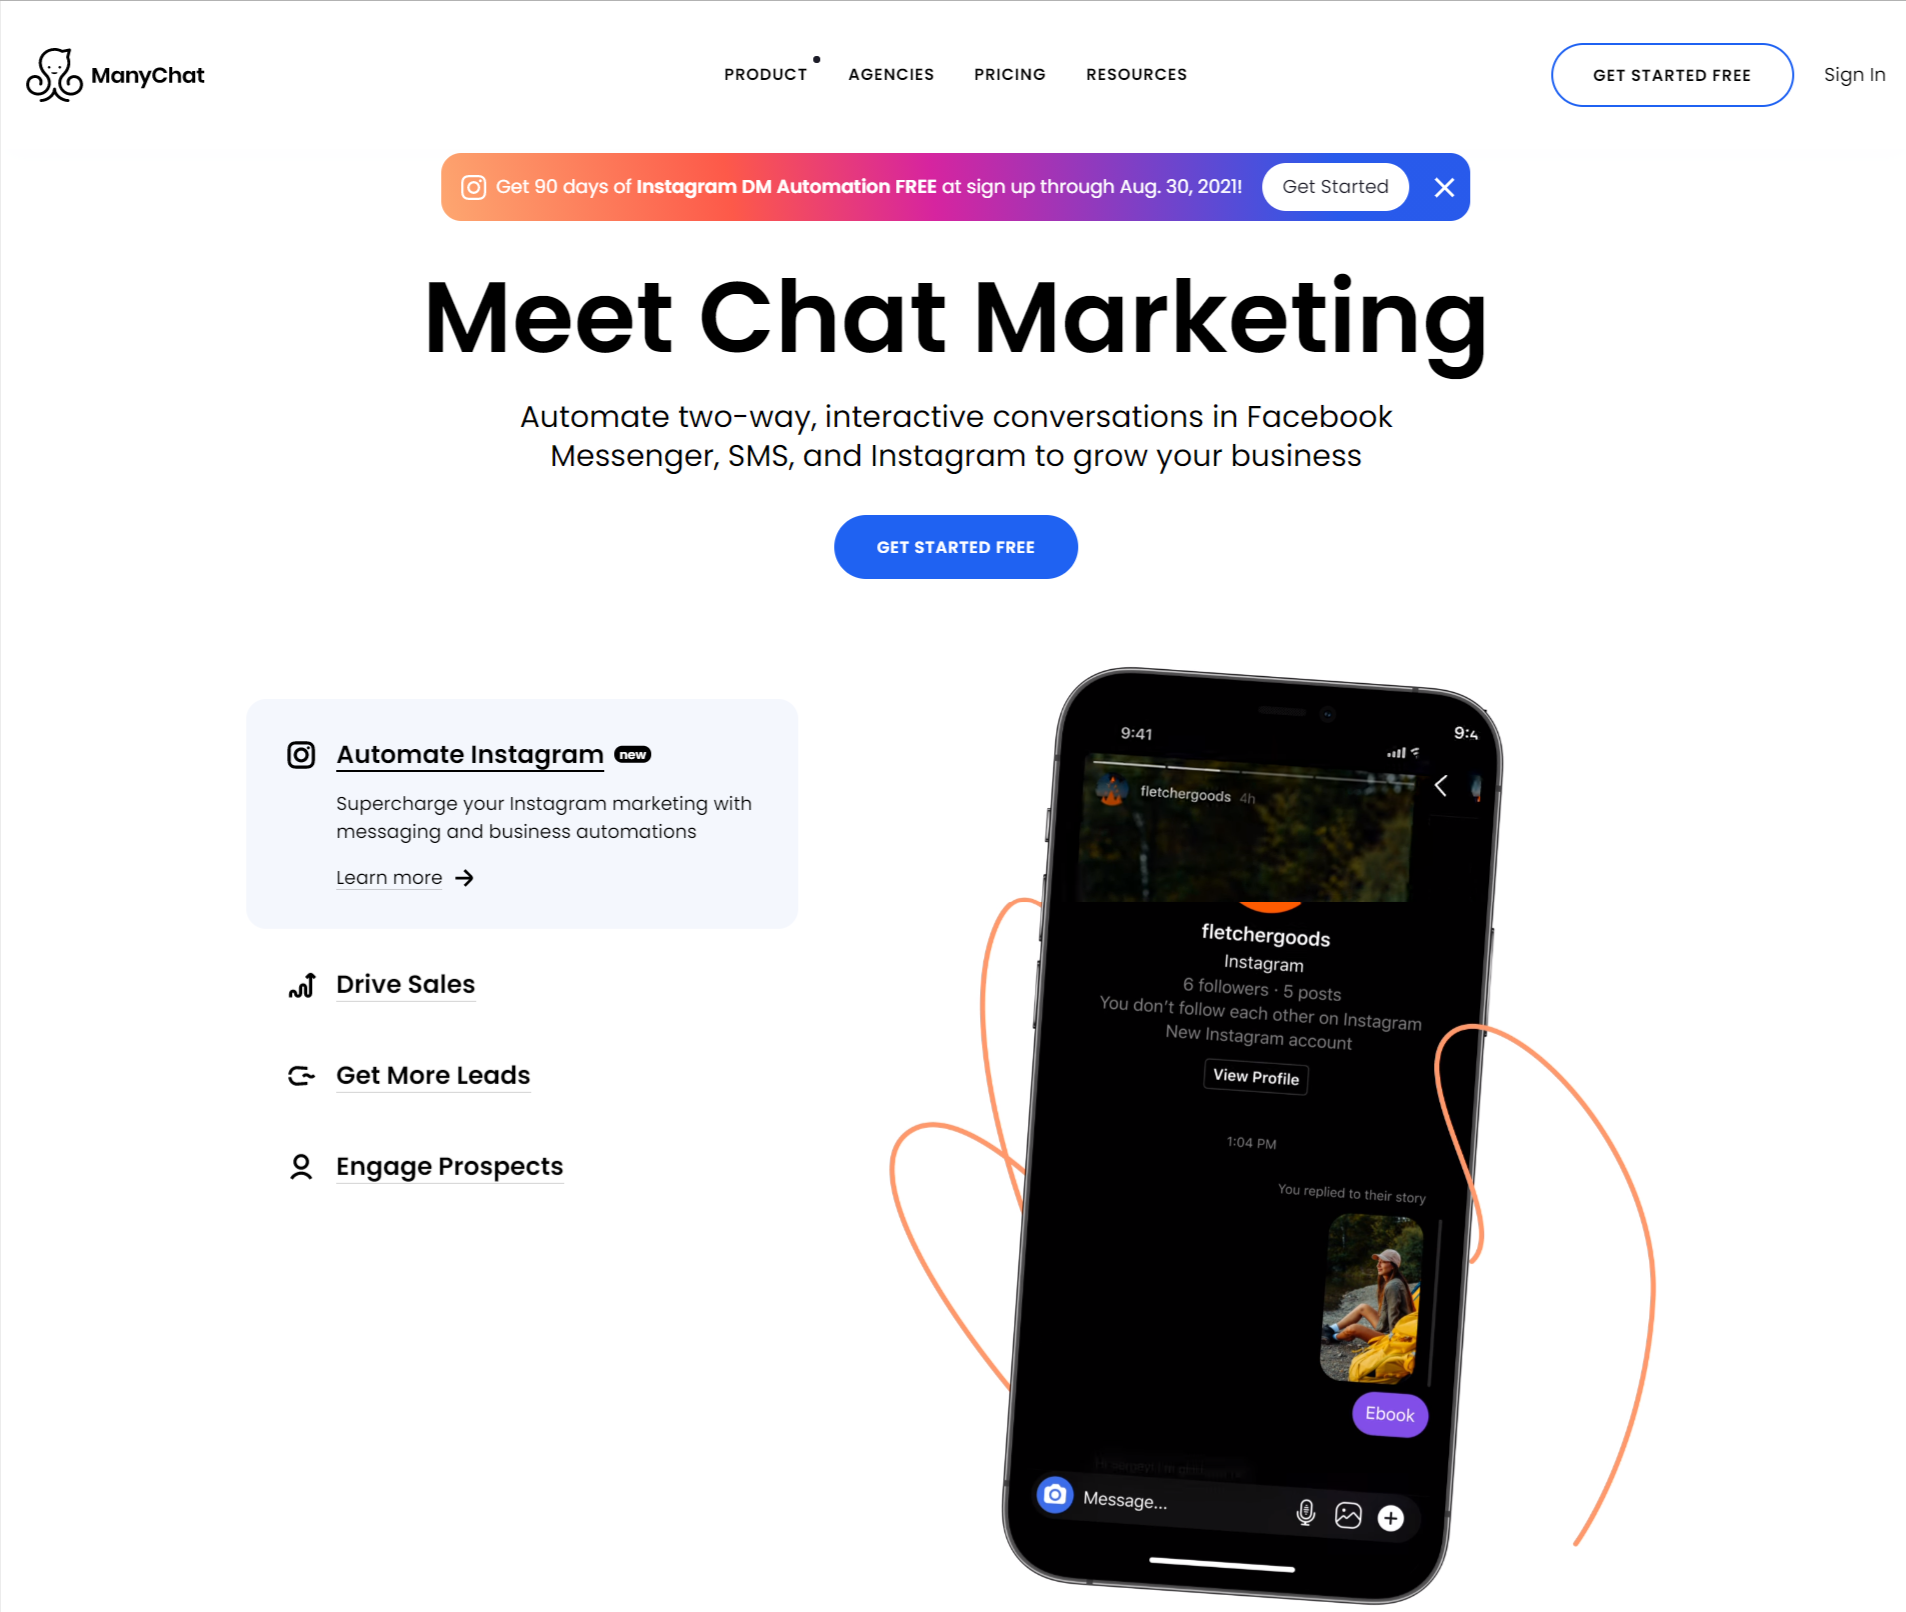 Manychat- meet chat marketing